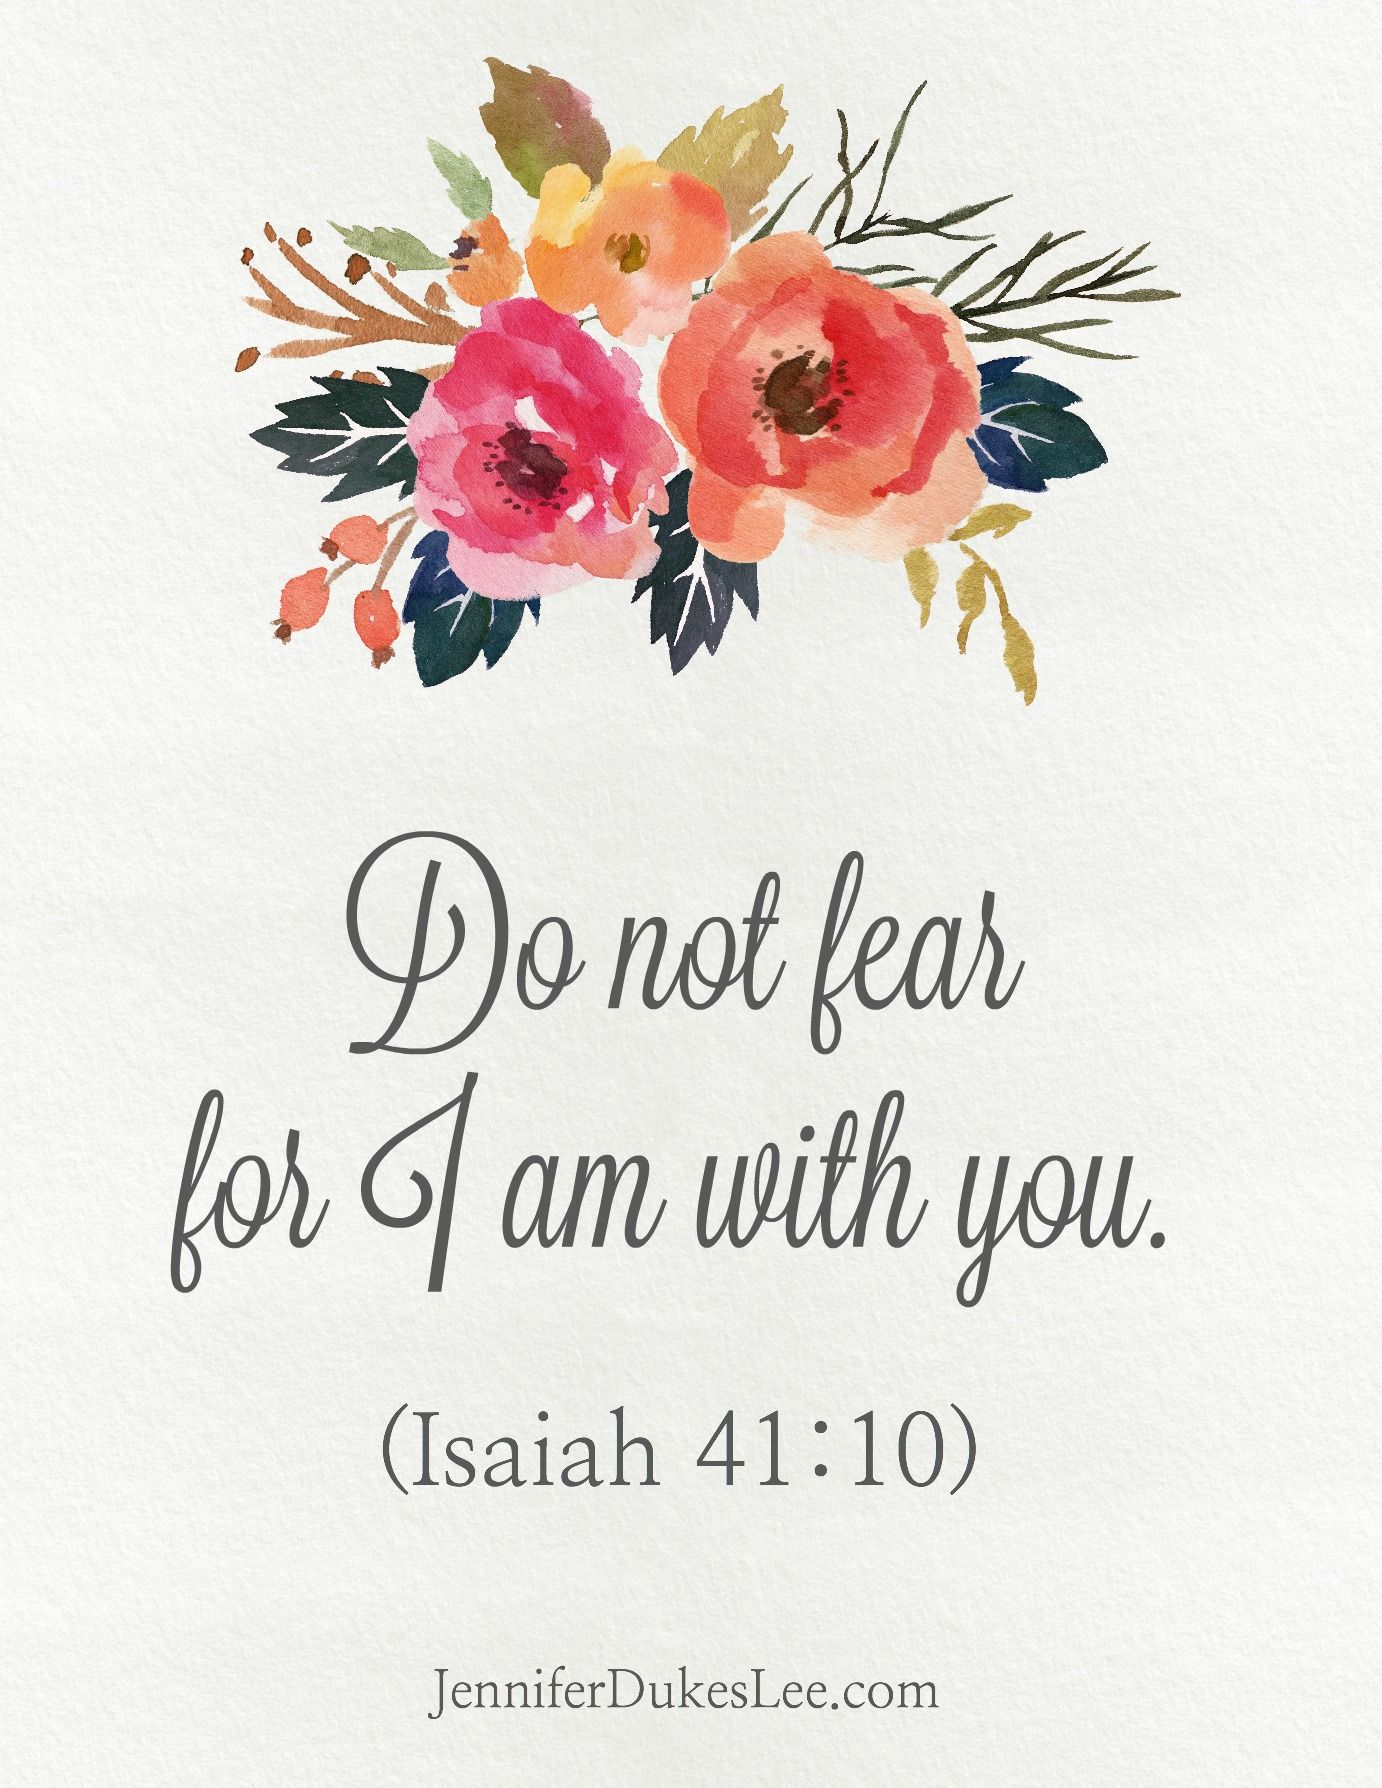 isiah 41 10 Isaiah 41:9 - 10 you whom i have taken from the ends of the earth, and called from its farthest regions, and said to you, 'you are my servant,.